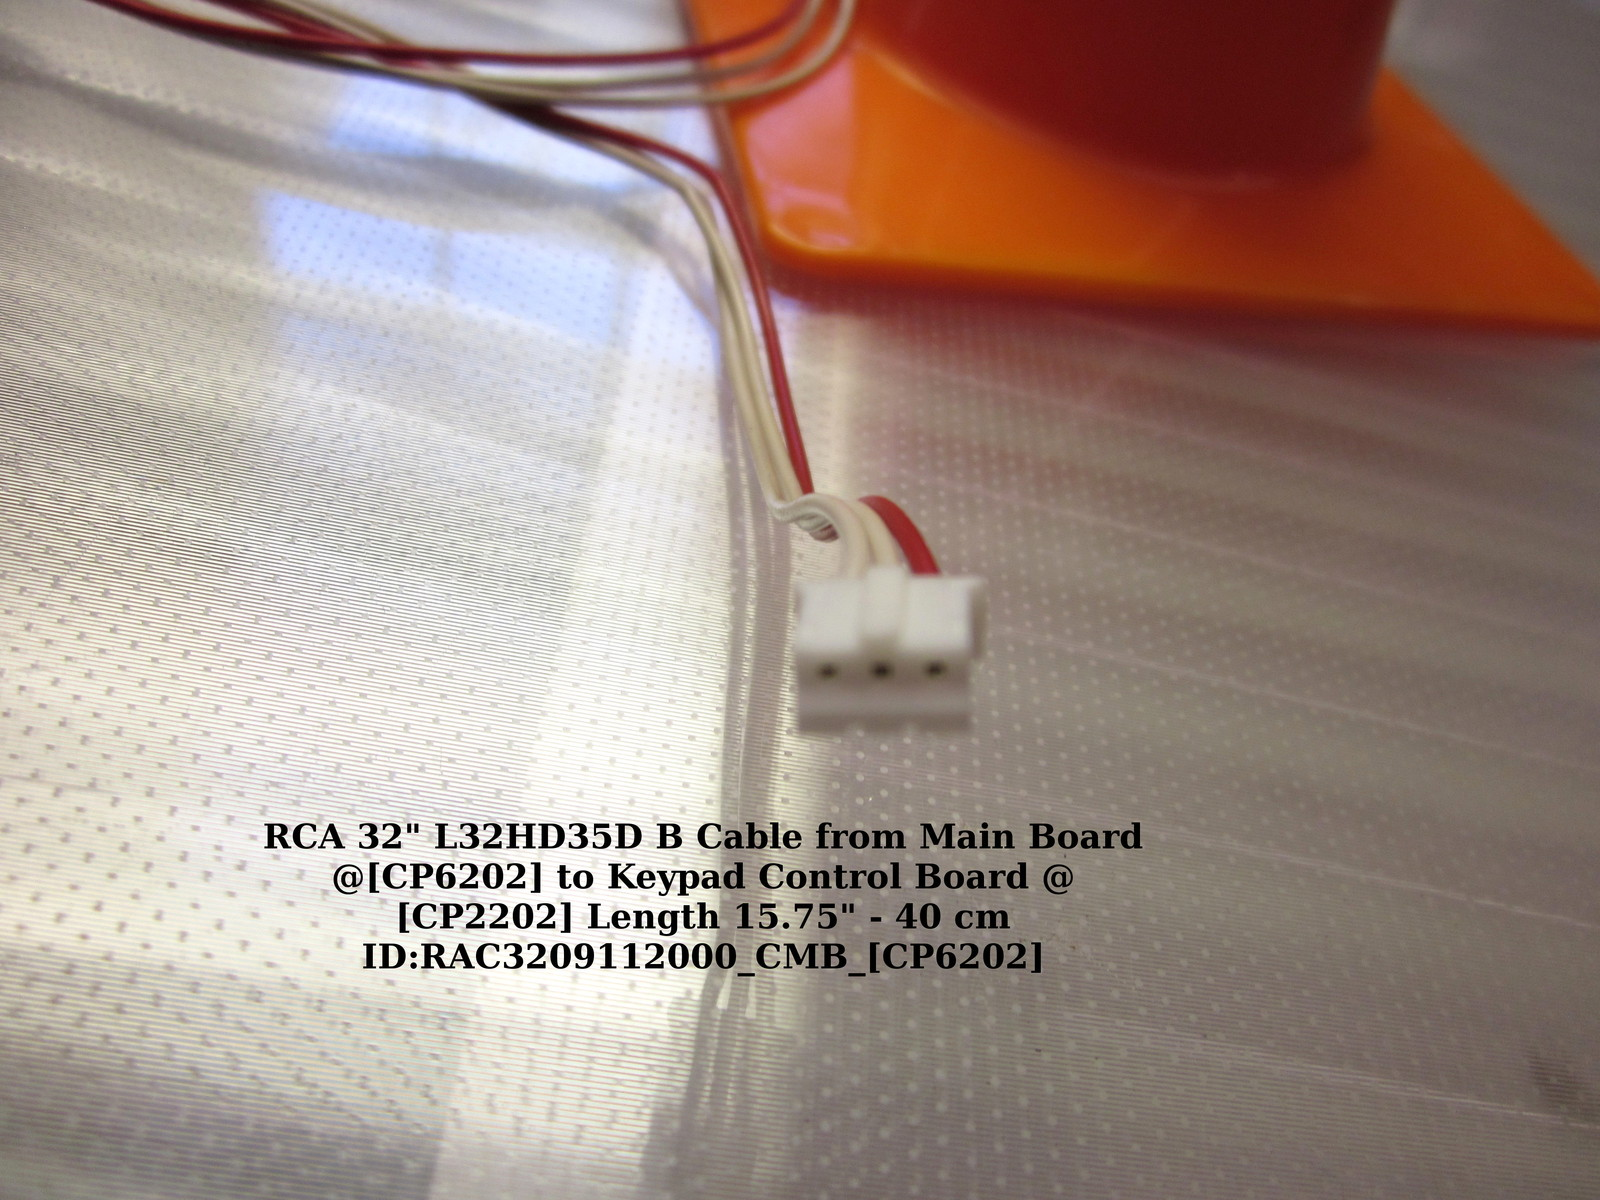 "RCA 32"" L32HD35D B Cable from Main Board @[CP6202] to Keypad Control Board"